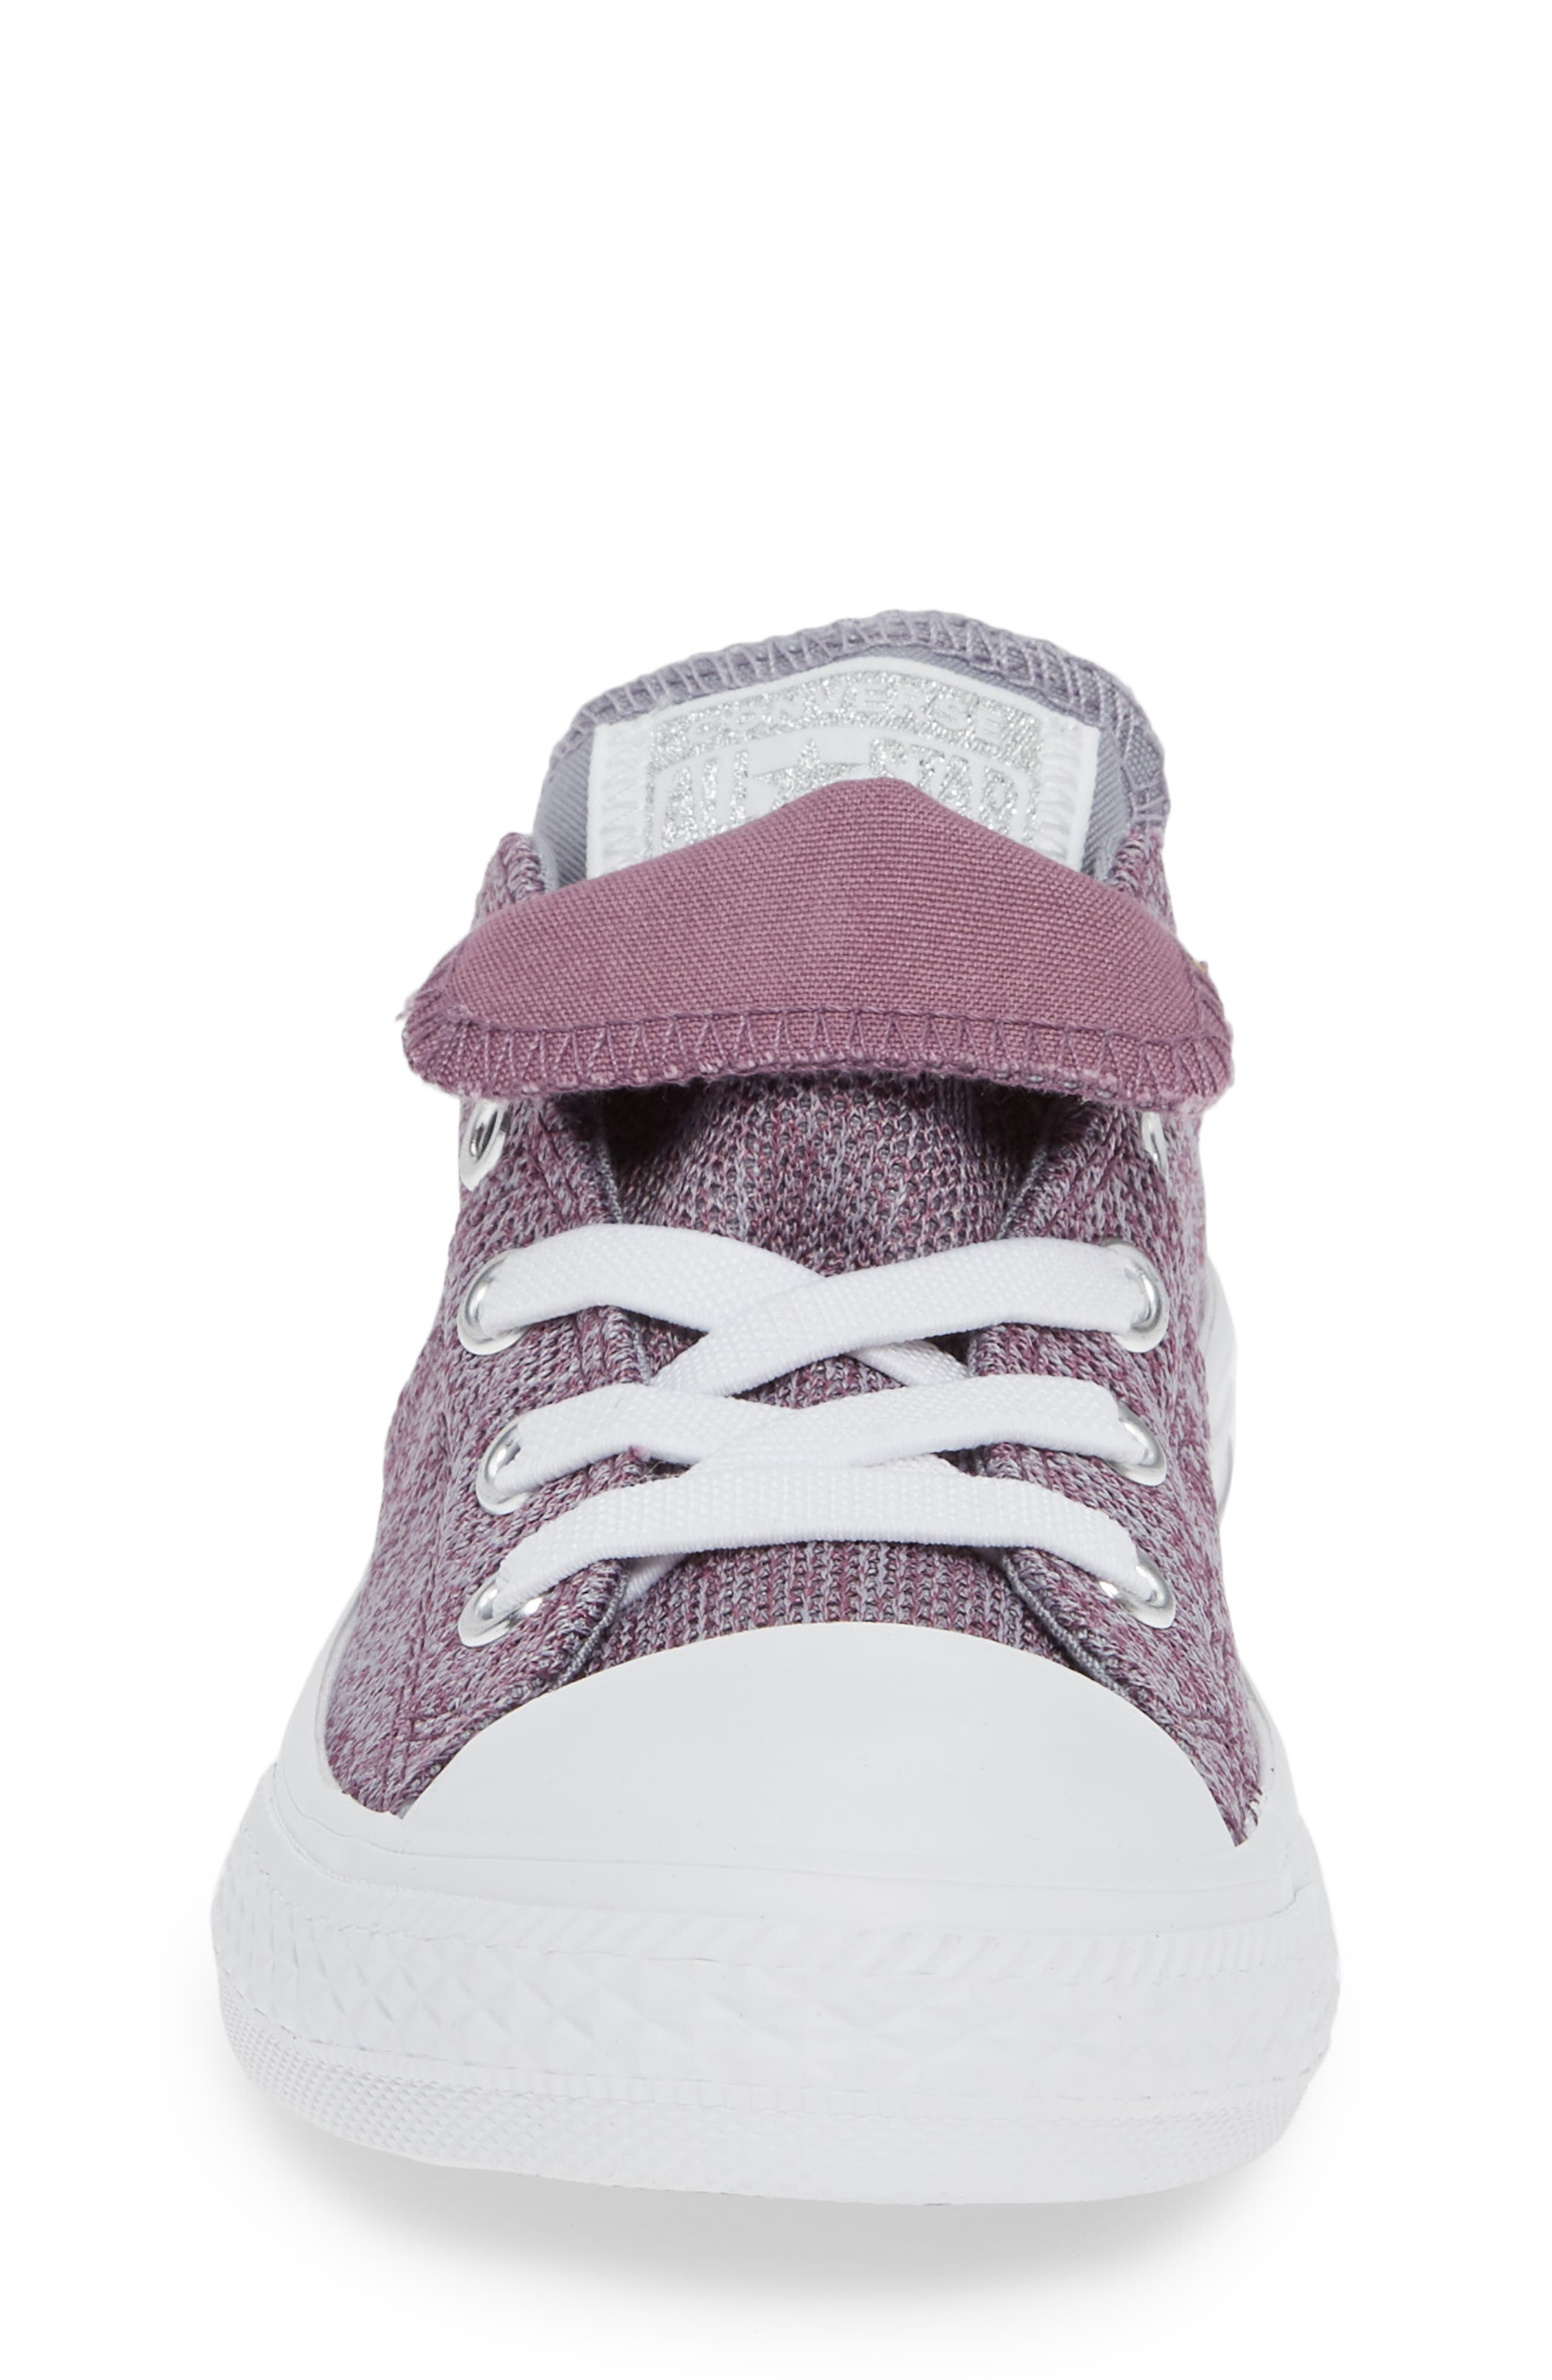 ,                             Chuck Taylor<sup>®</sup> All Star<sup>®</sup> Maddie Double Tongue Sneaker,                             Alternate thumbnail 52, color,                             500